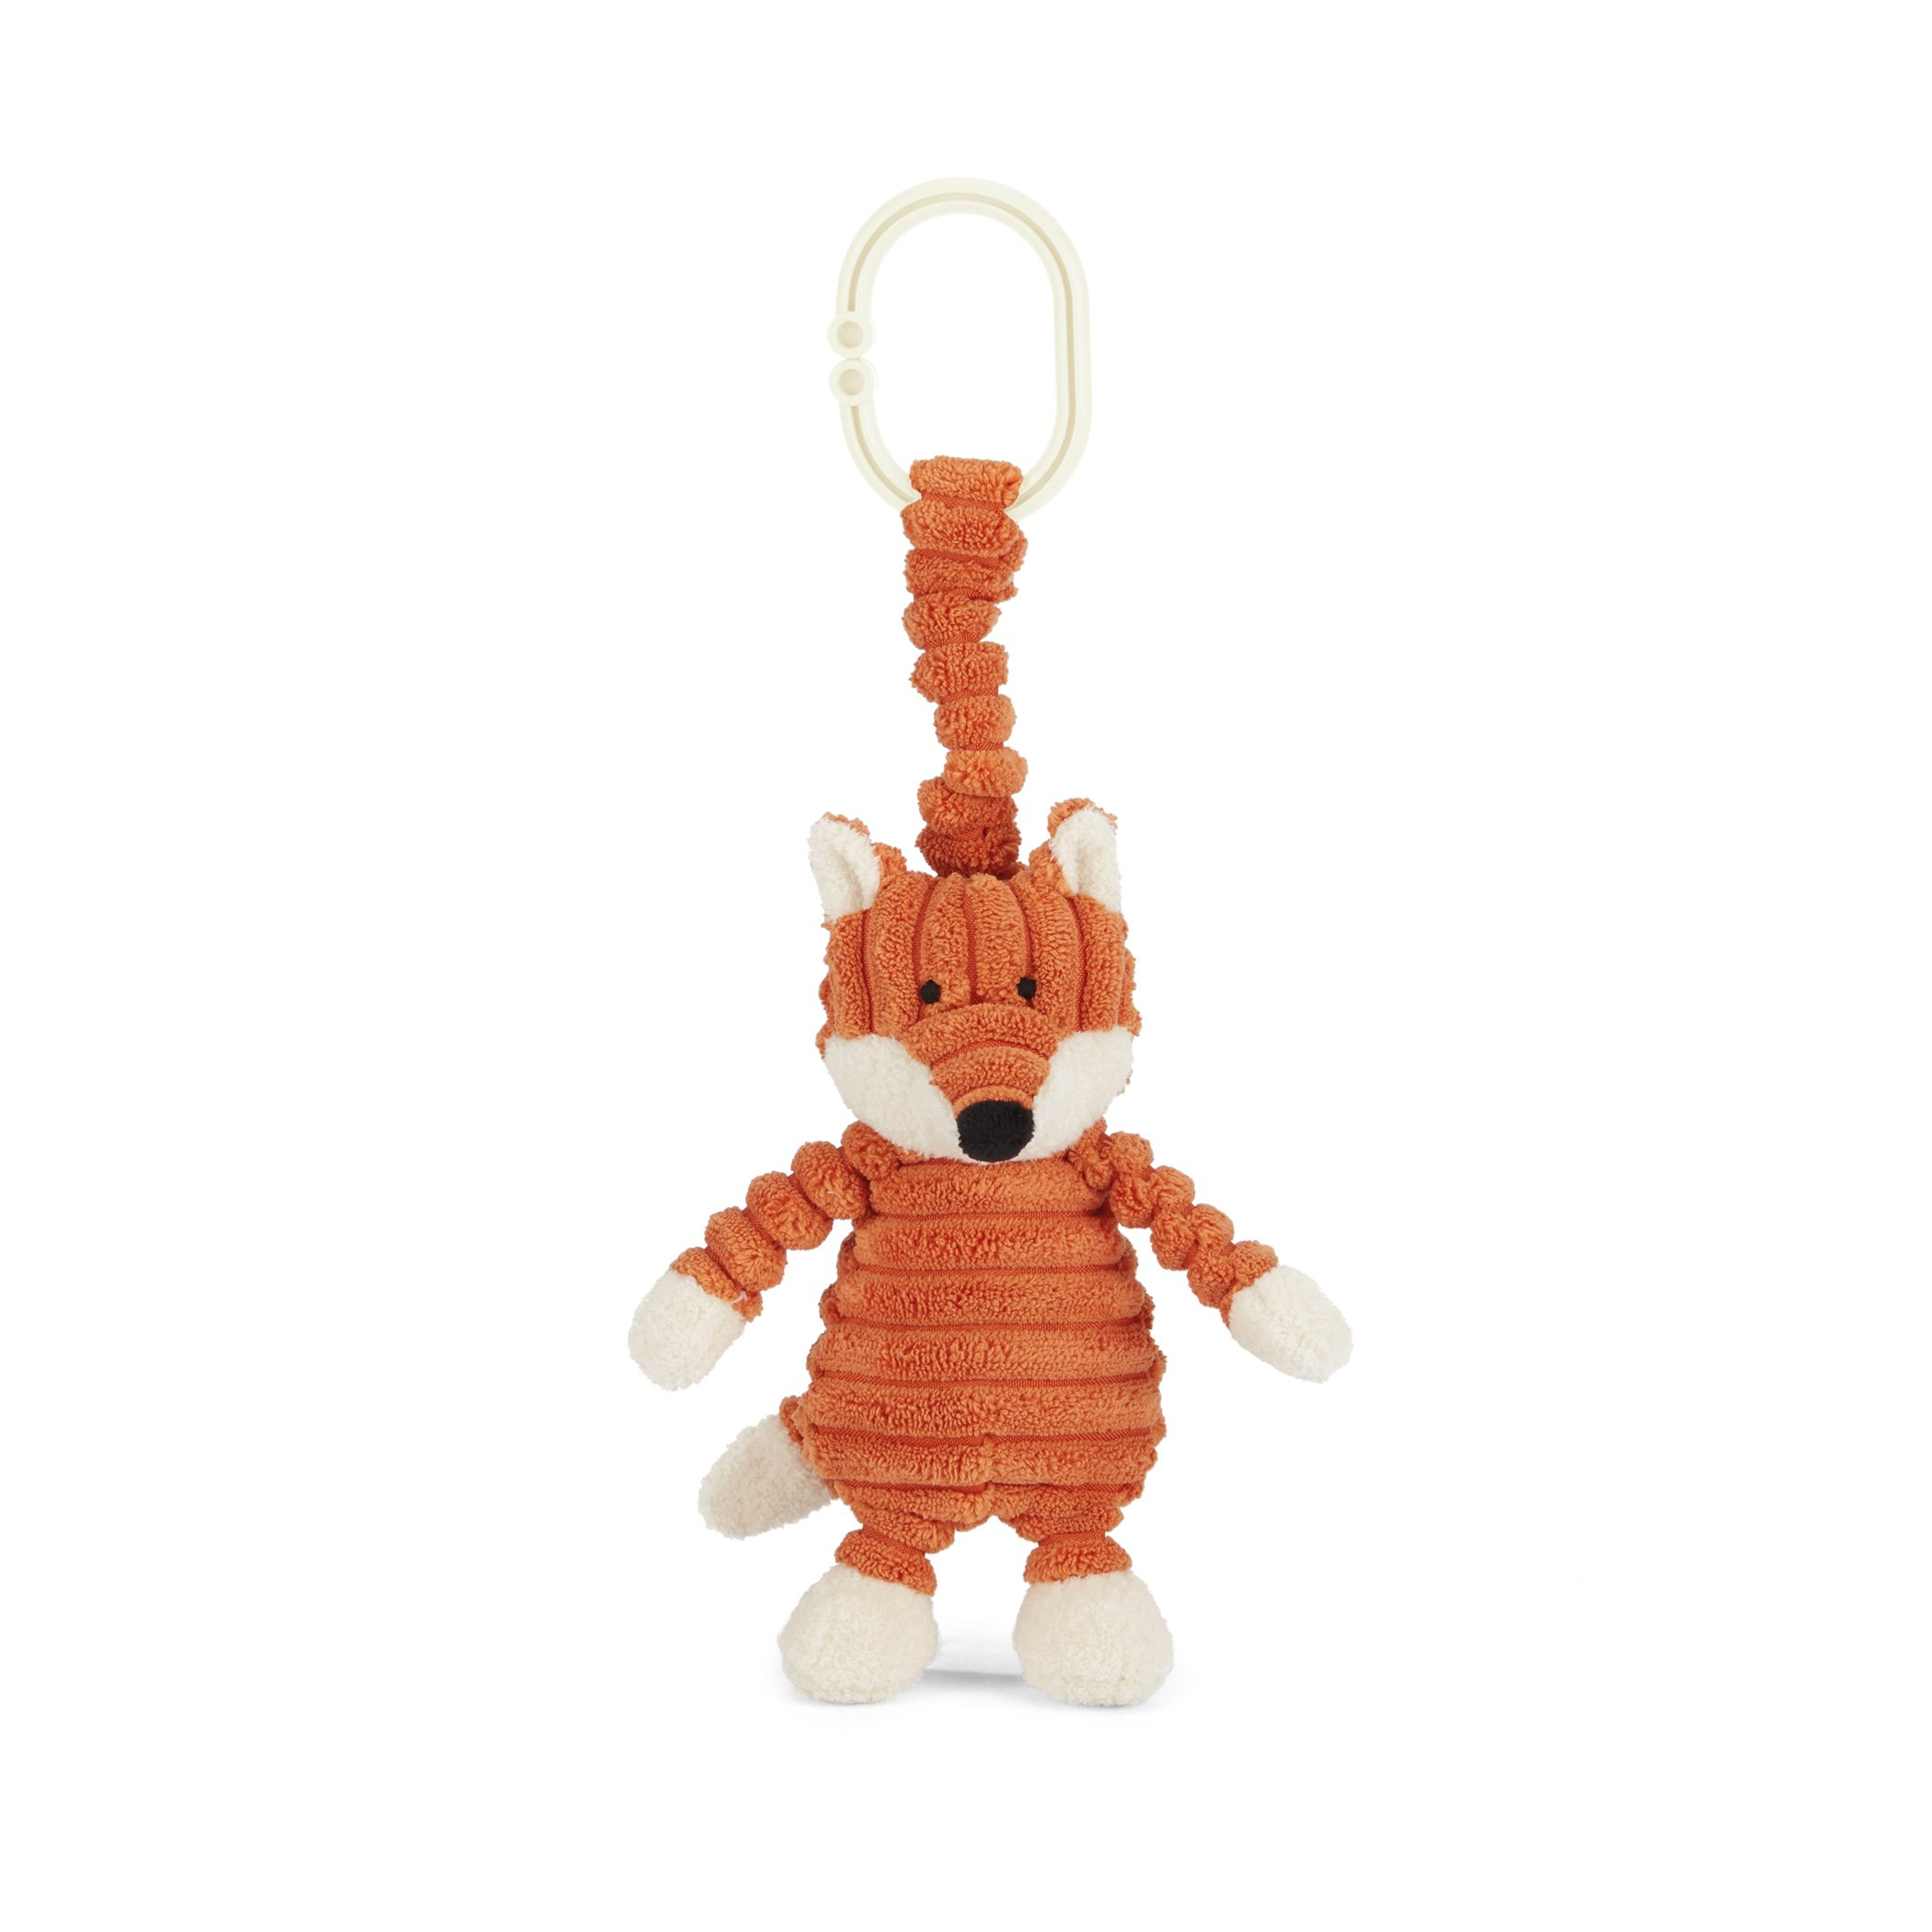 Jellycat Cordy Roy Baby Fox Jitter Stroller Toy, 7 inches